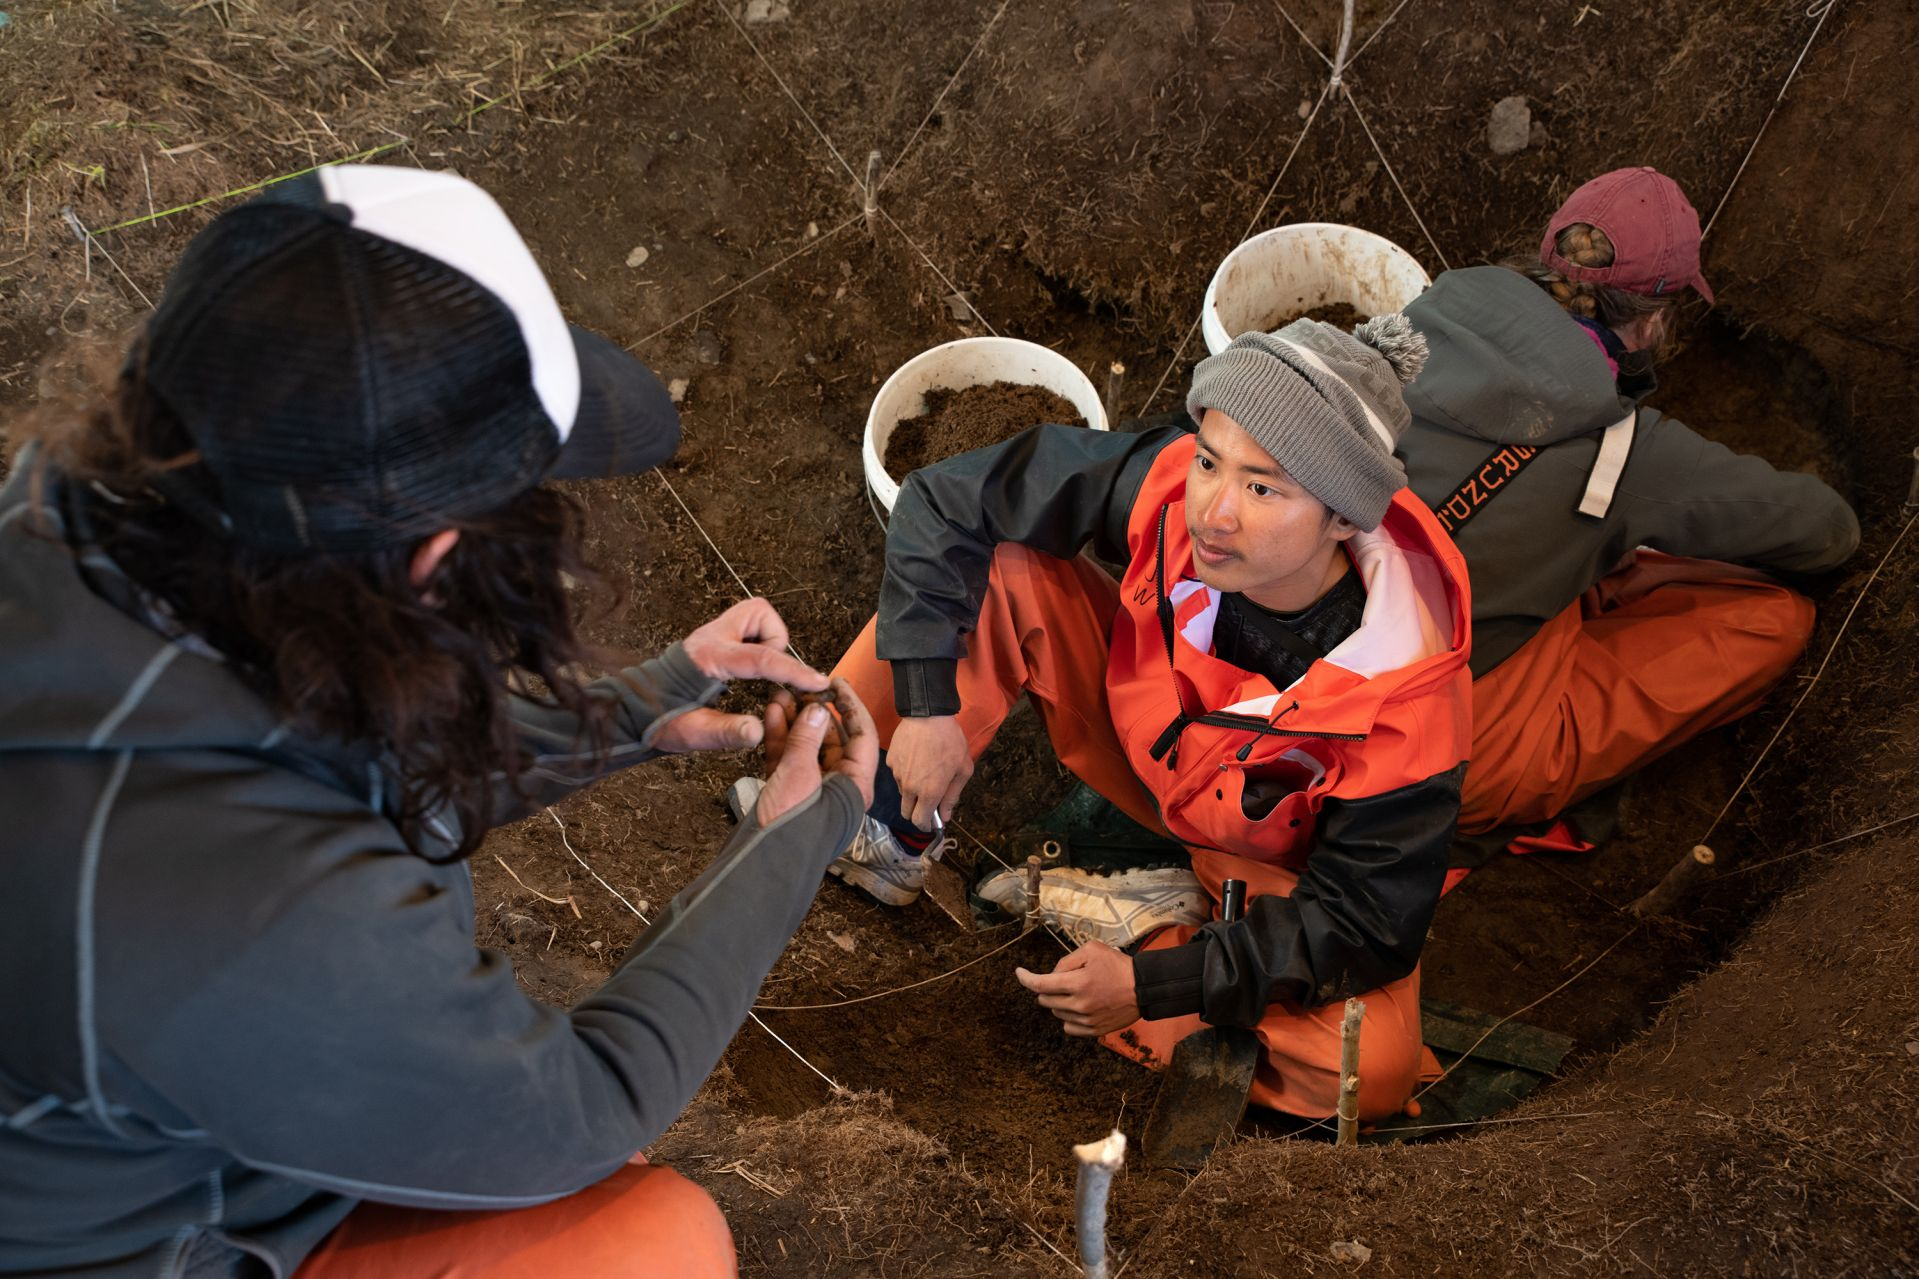 Jinzhi Wei '20 confers with Kristen Barnett inside the dig site. (Tim Leach for Bates College)